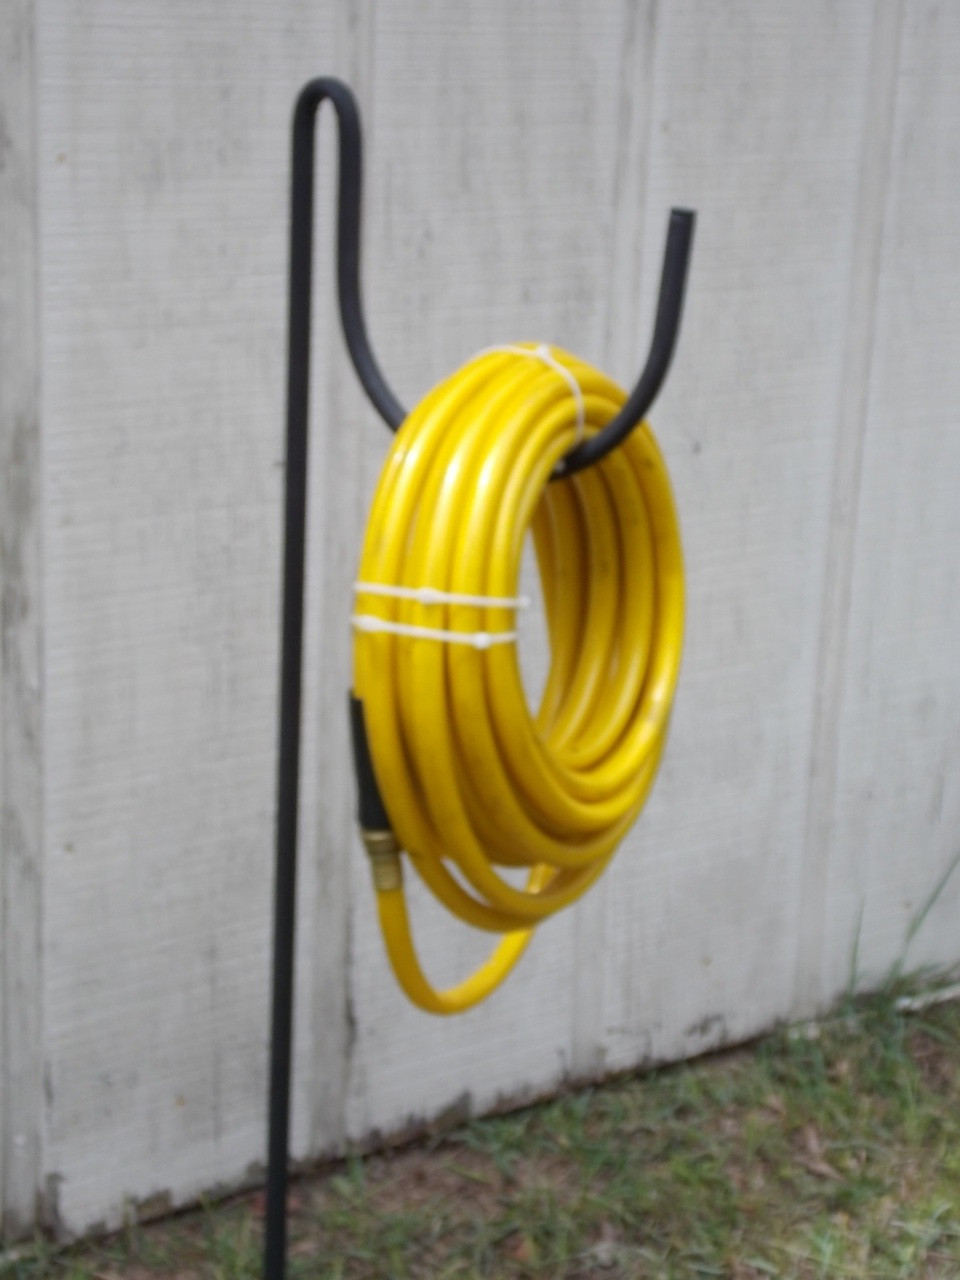 Attirant Garden Hose Holder Galvanized Tube Wonu0027t Rust Holds 200u0027 ...